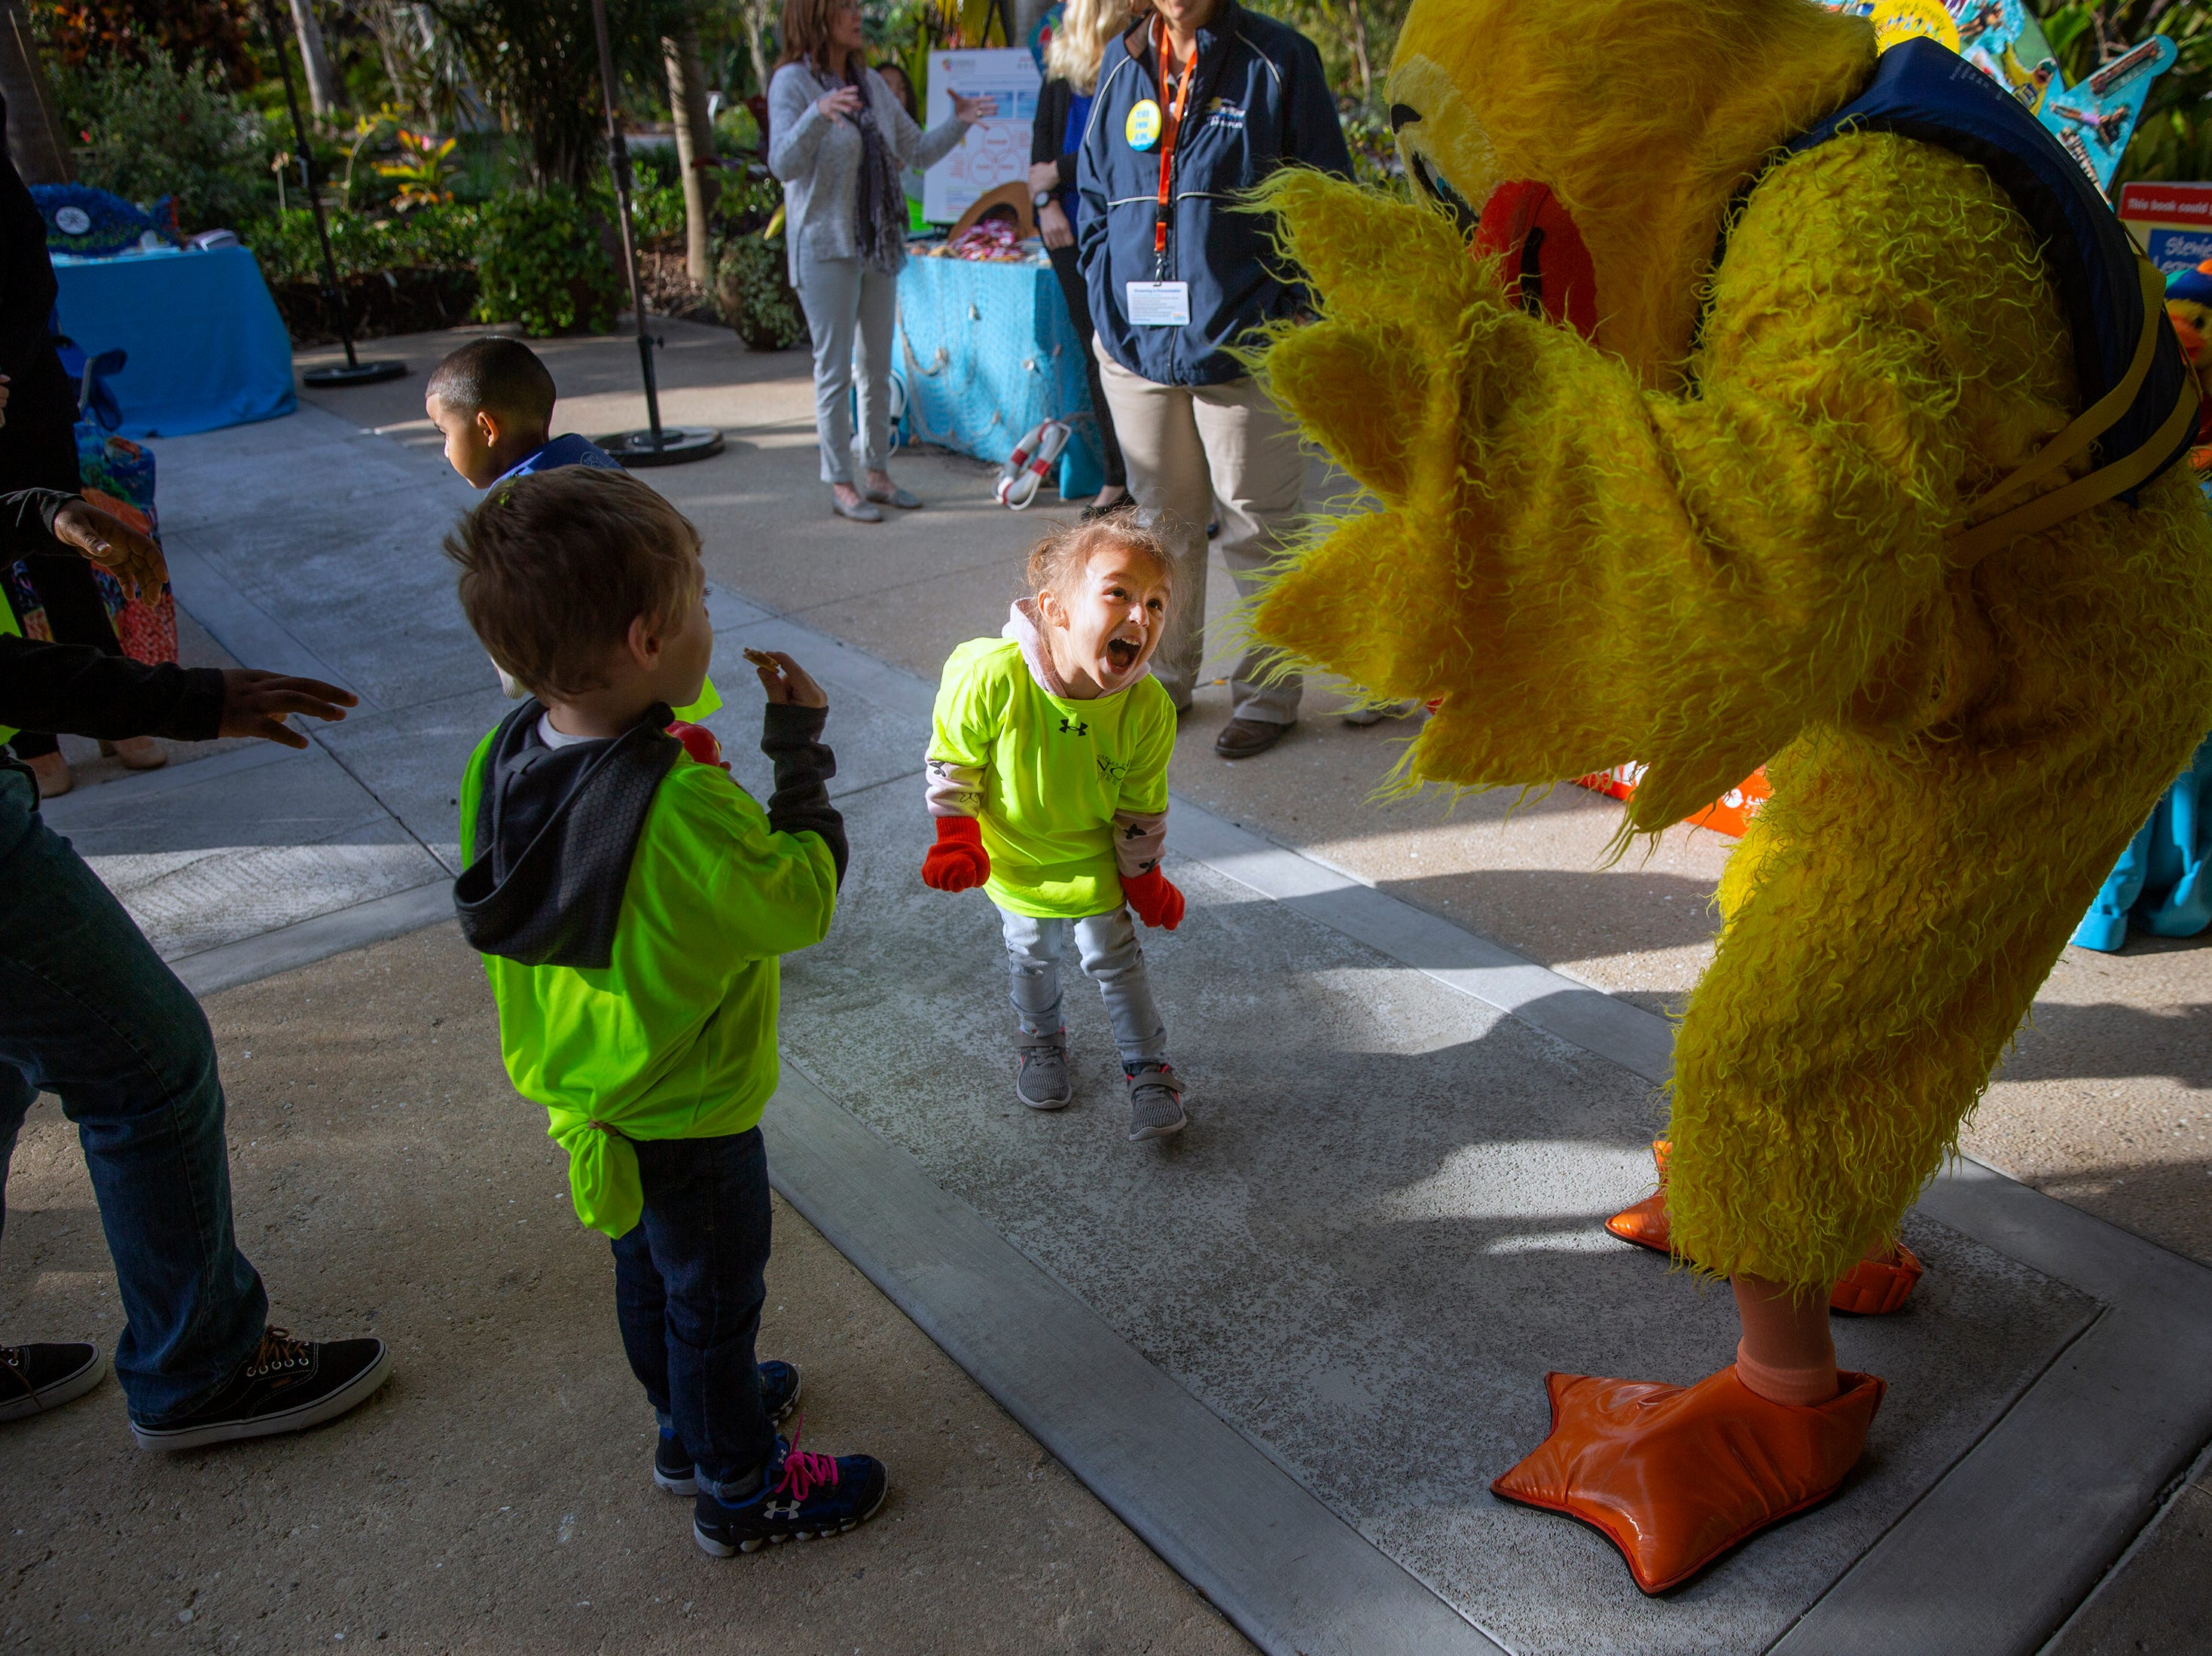 Sawyer Bewley-Rojas, center, plays with Stewie the Duck, the mascot for Safe and Healthy Children's Coalition of Collier County, during the Naples Winter Wine Festival Meet the Kids Day, Friday, Jan. 25, 2019, at Naples Botanical Garden.